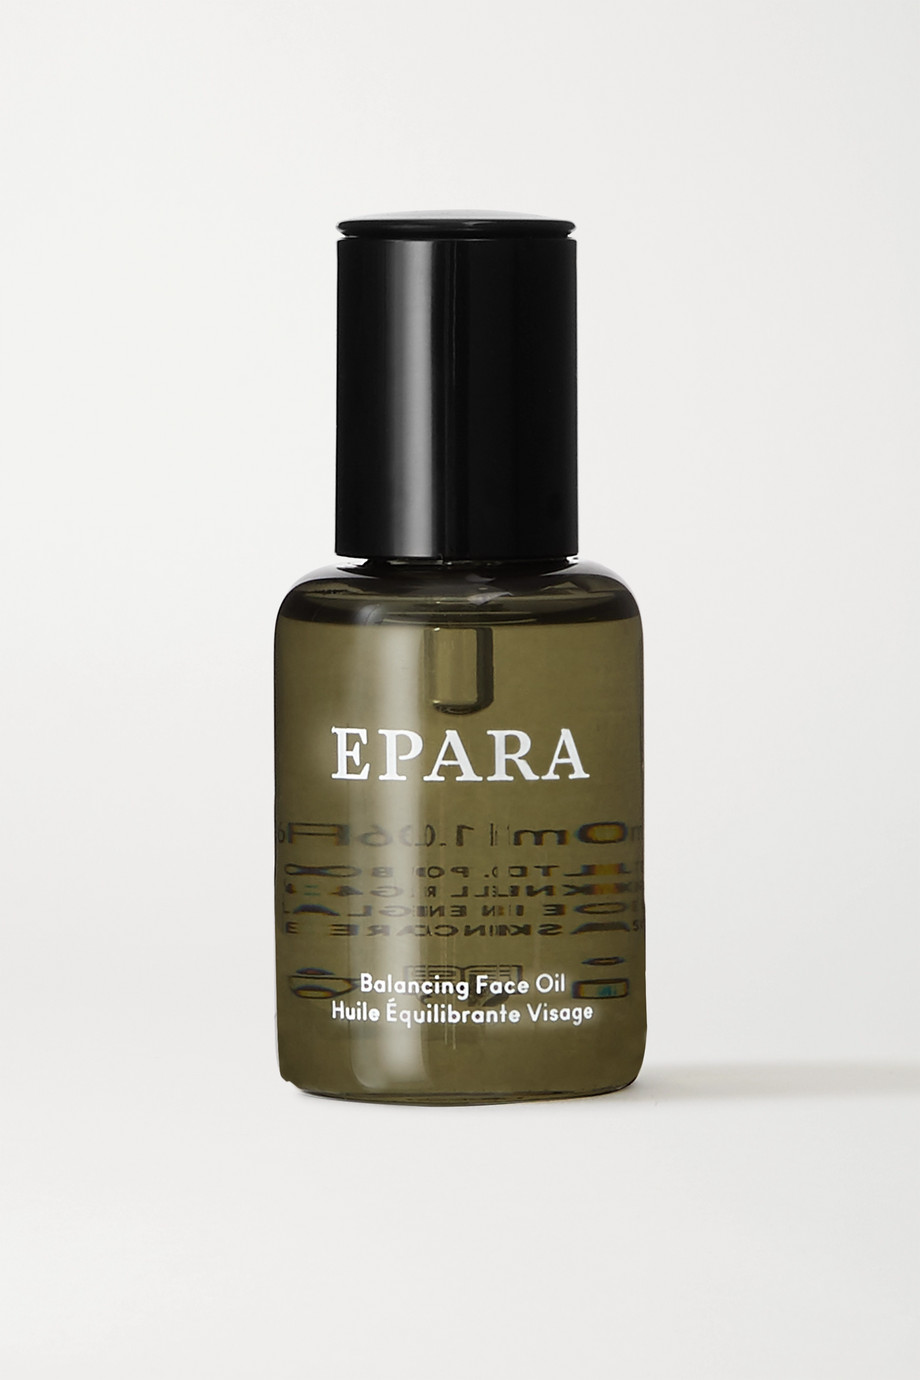 Epara Balancing Face Oil, 30 ml – Gesichtsöl